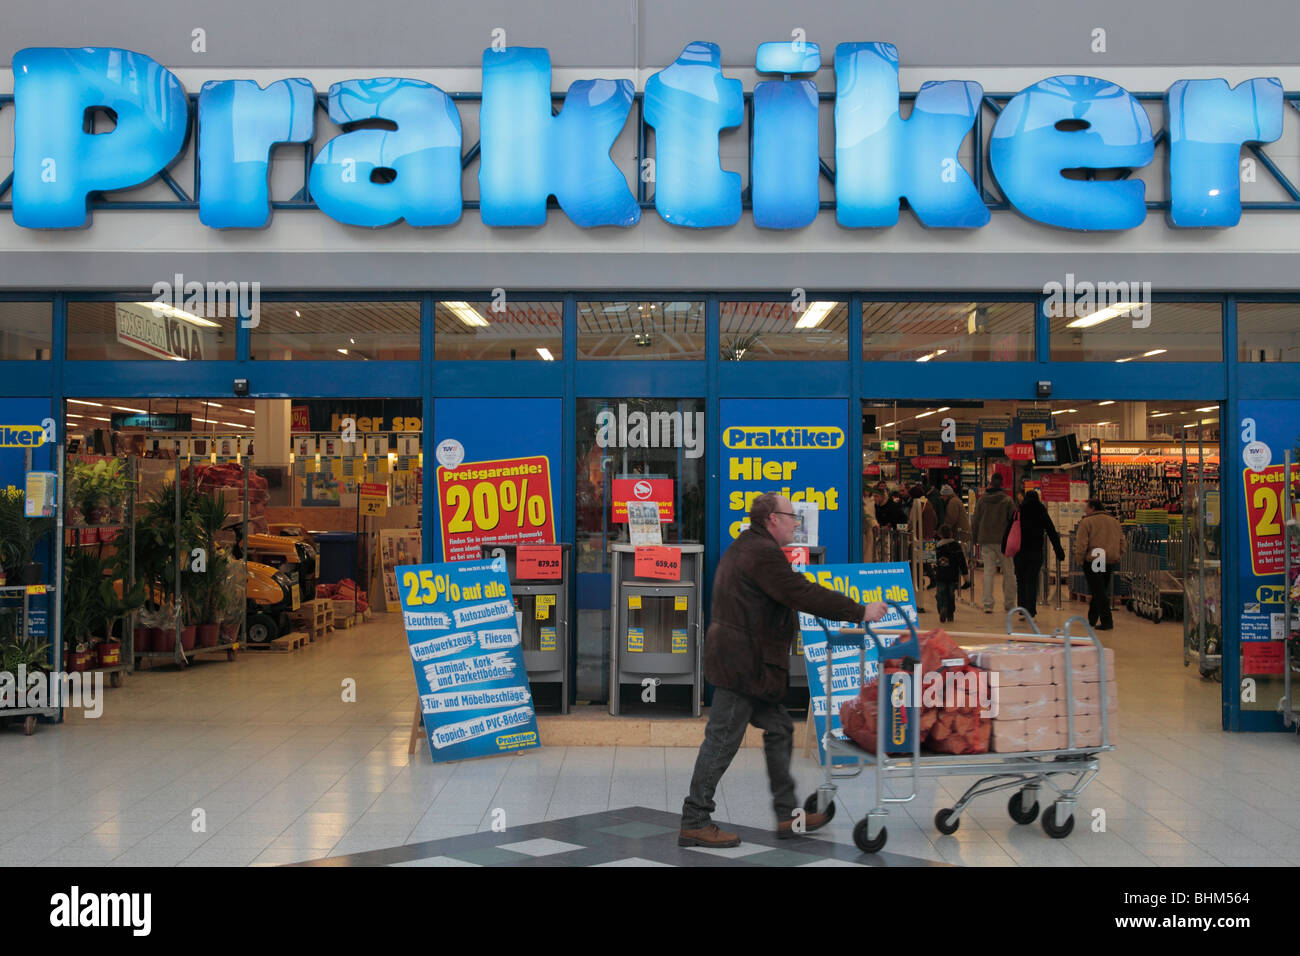 Baumarkt Stock Photos Baumarkt Stock Images Alamy - Fliesen discount celle